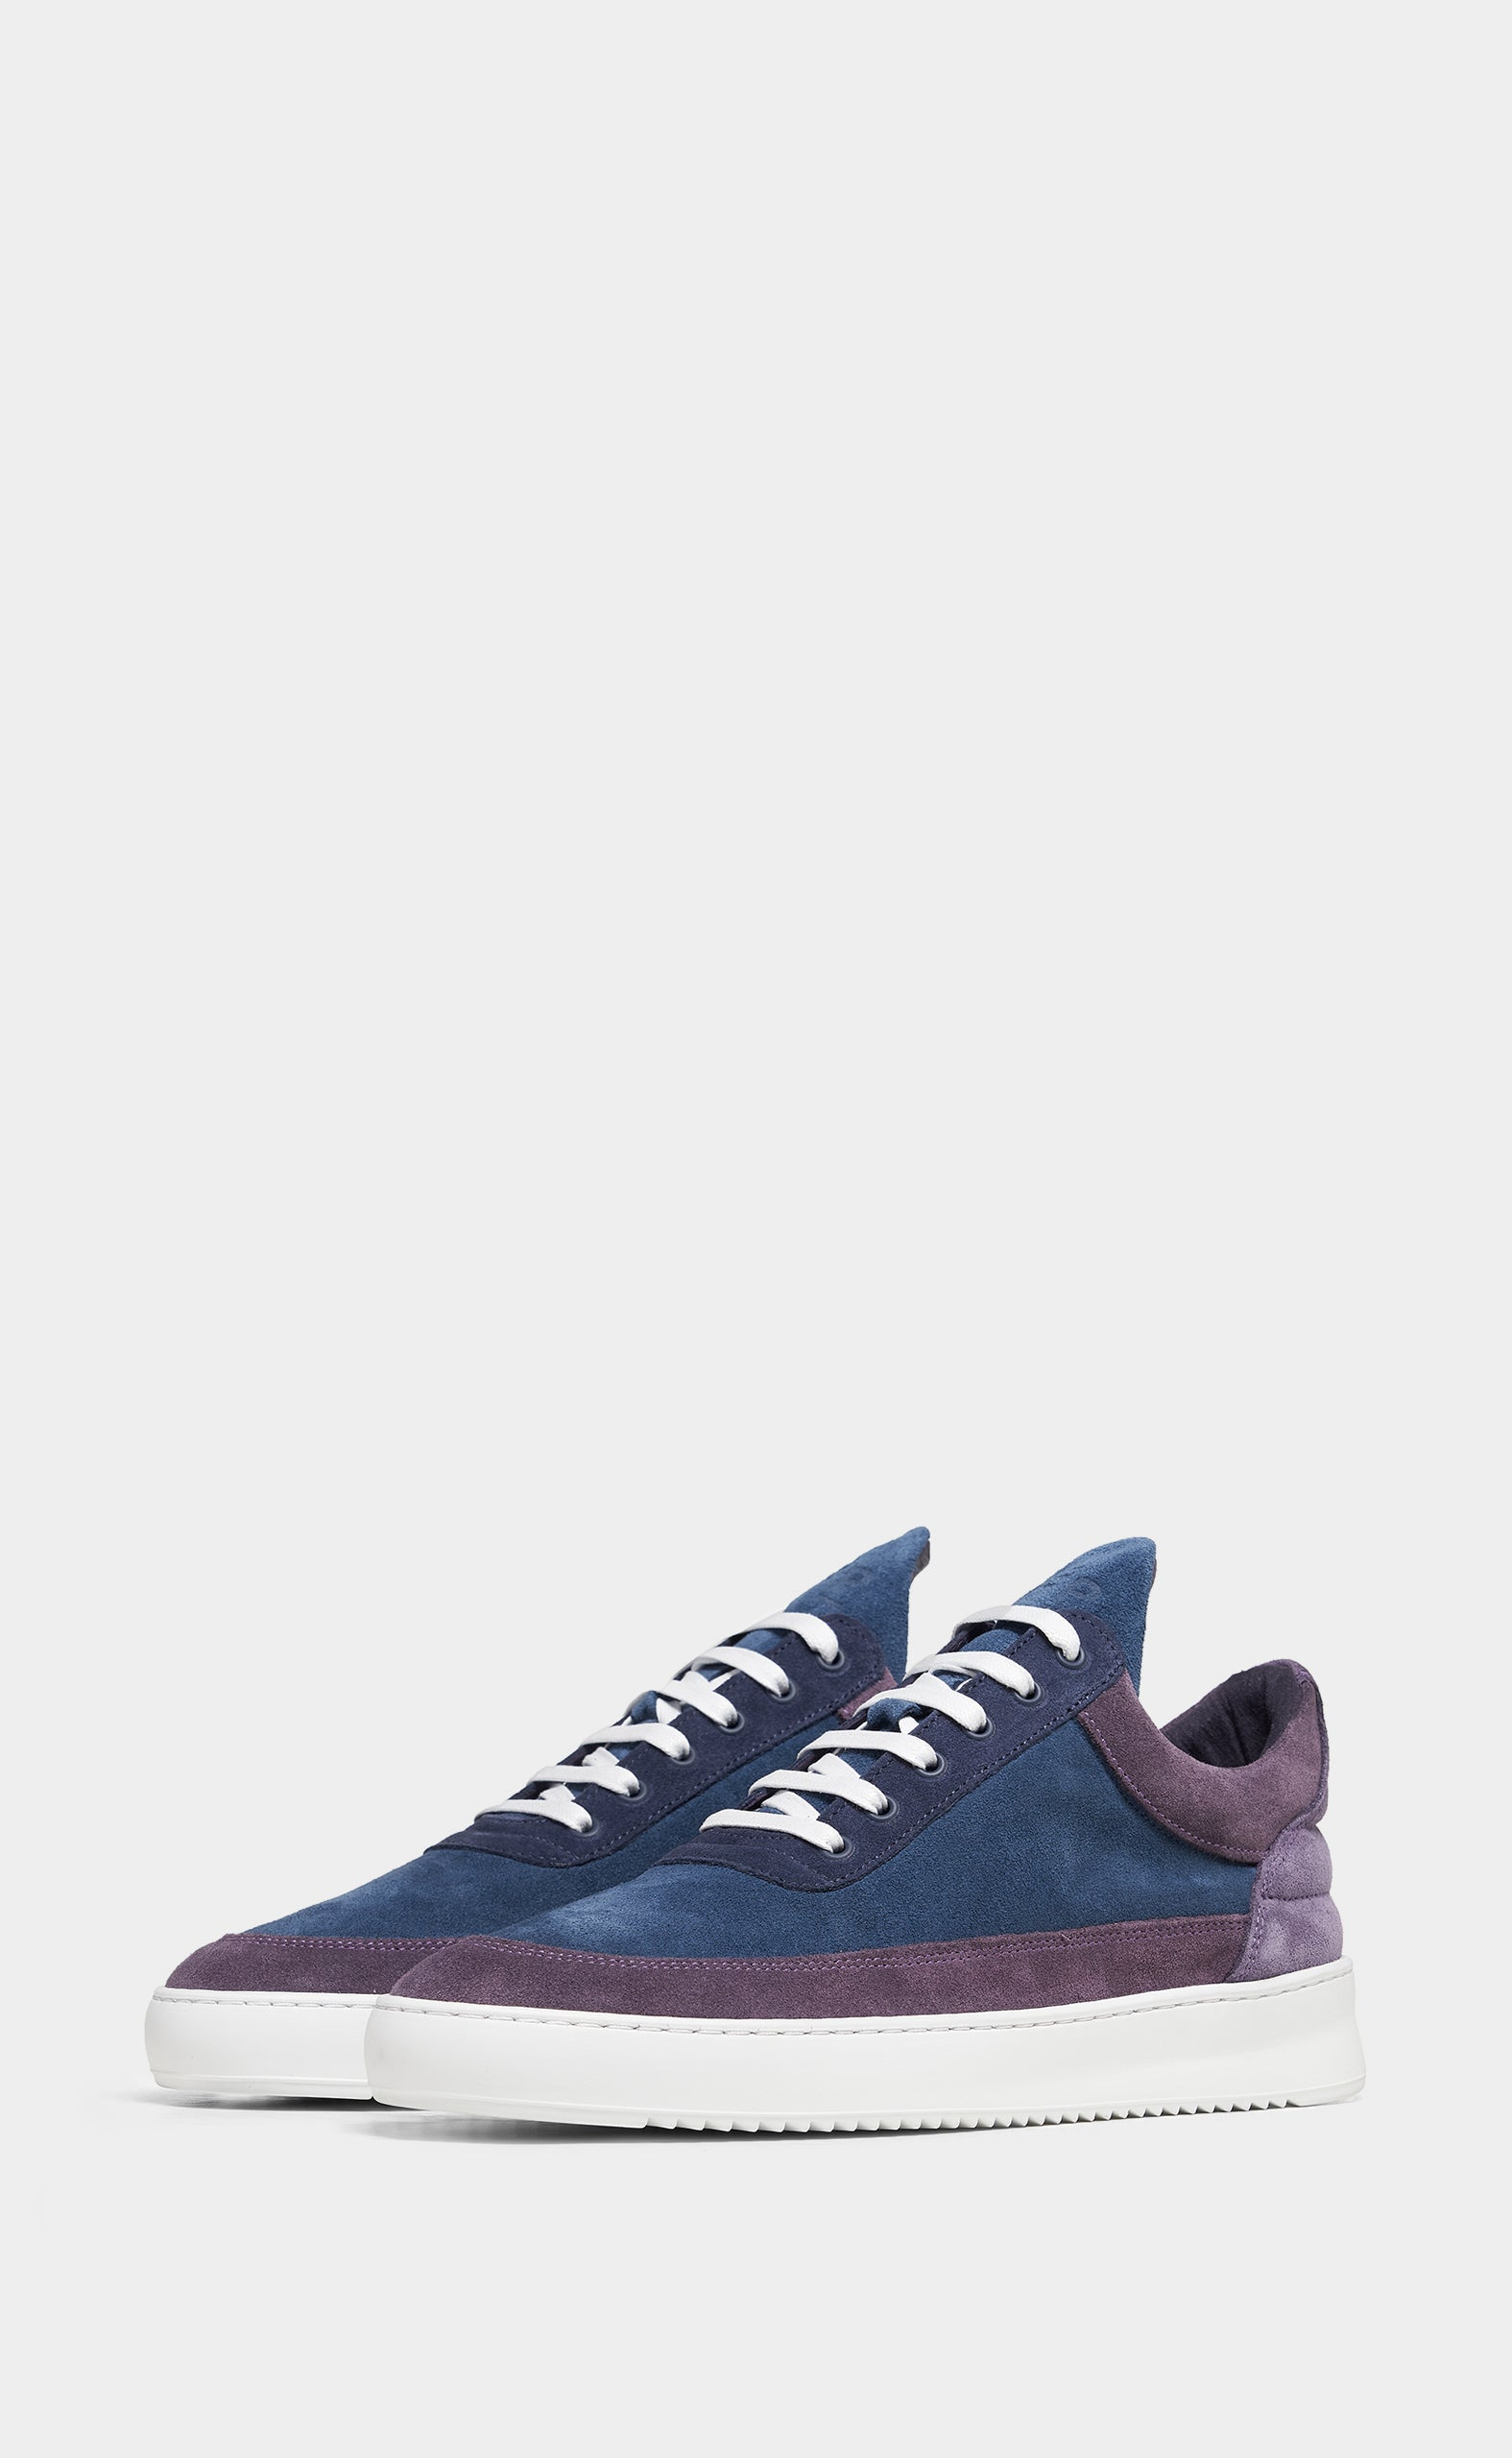 Low Top Ripple Multi Navy Blue